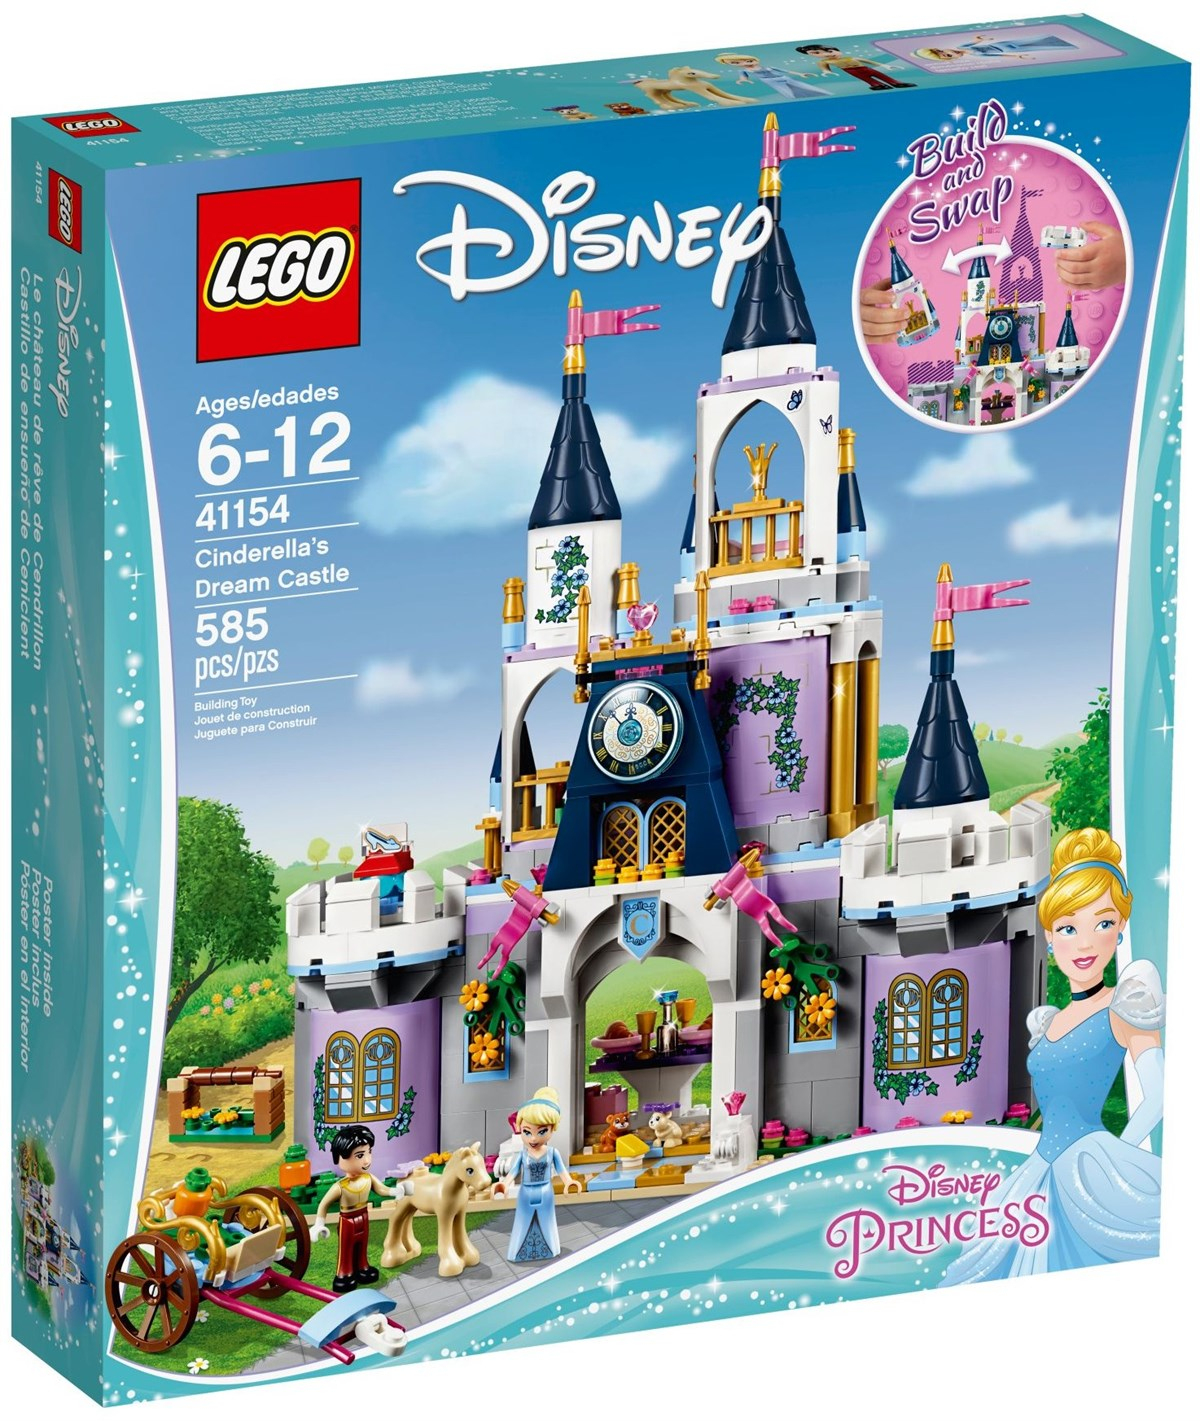 Lego 41154 Disney Cinderella's Dream Castle concernant Cendrillon 3 Disney